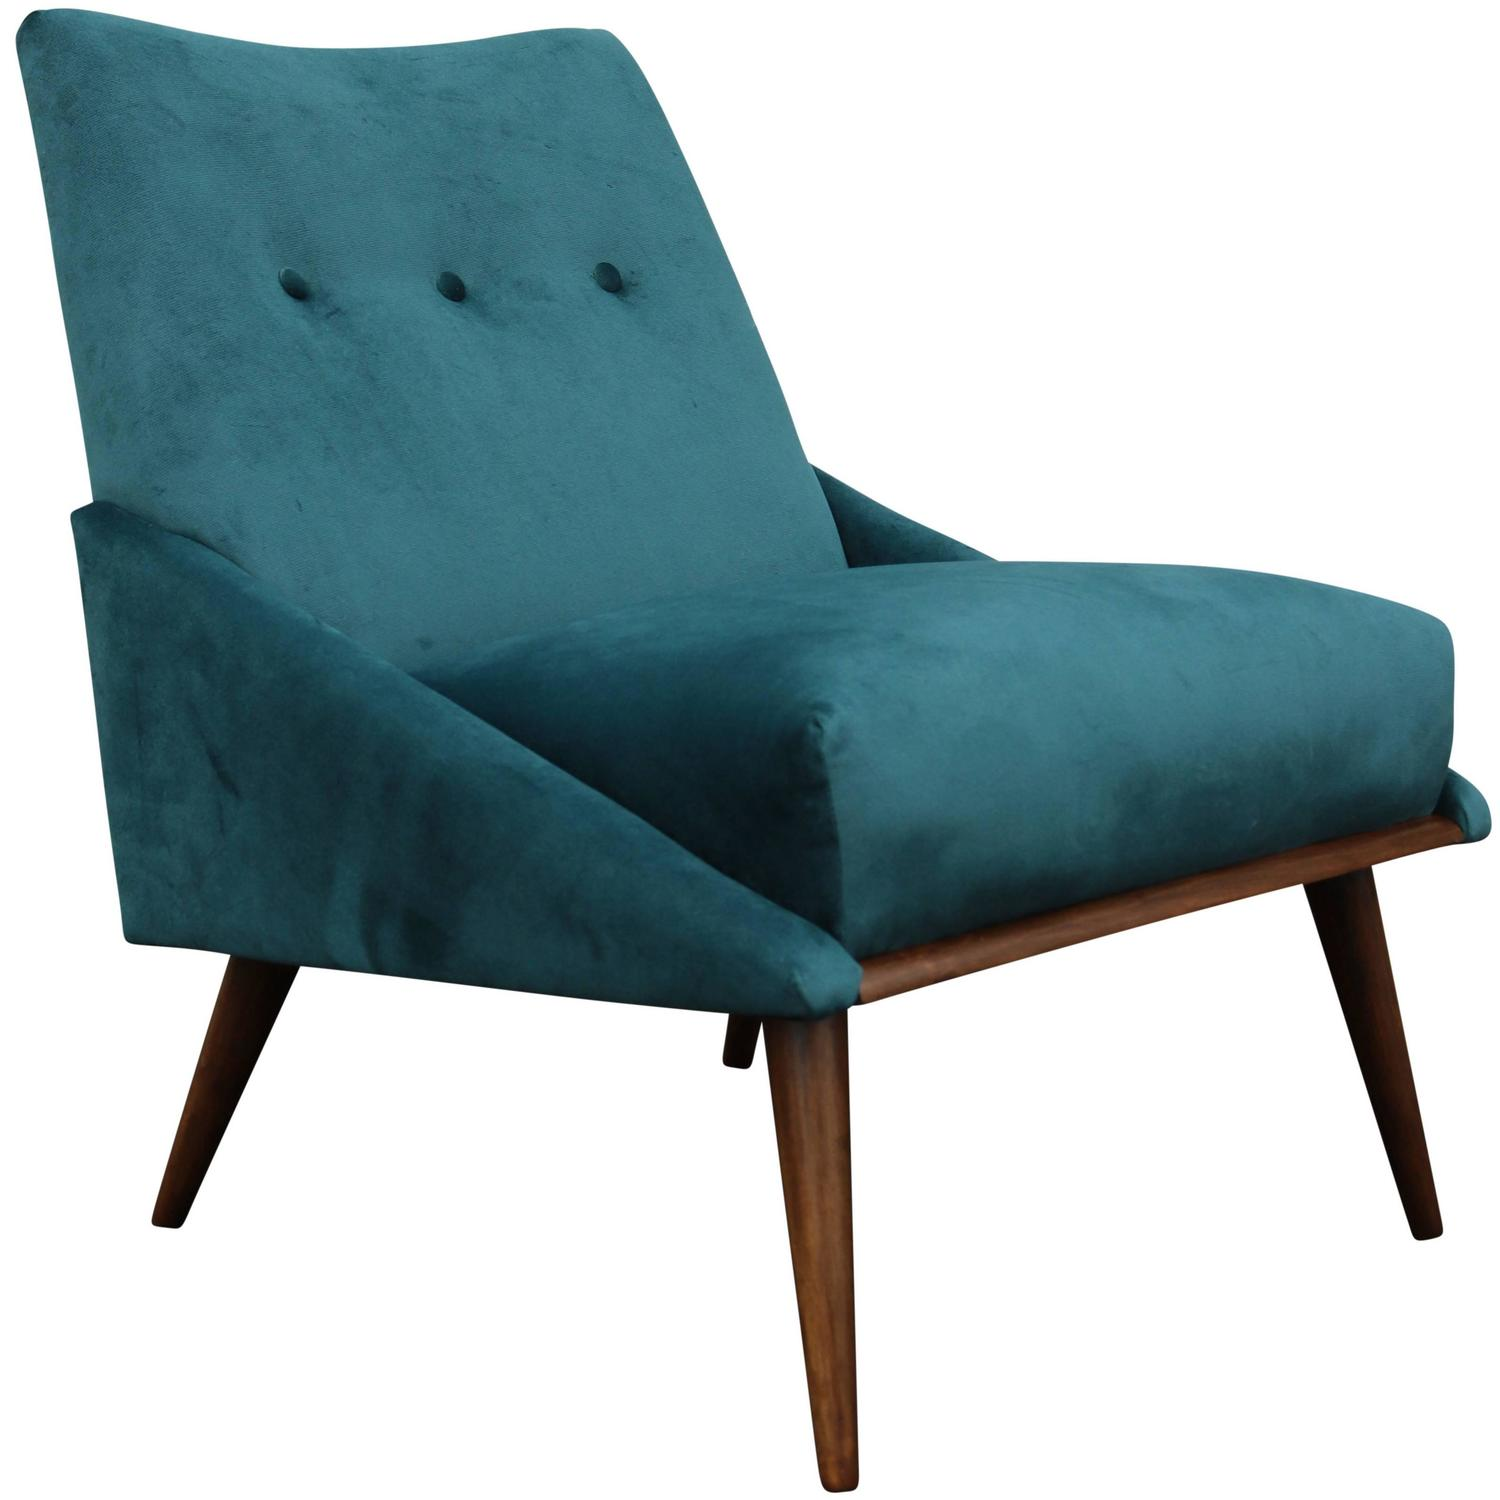 Mid Century Chair: Peacock Velvet Mid-Century Modern Chair At 1stdibs